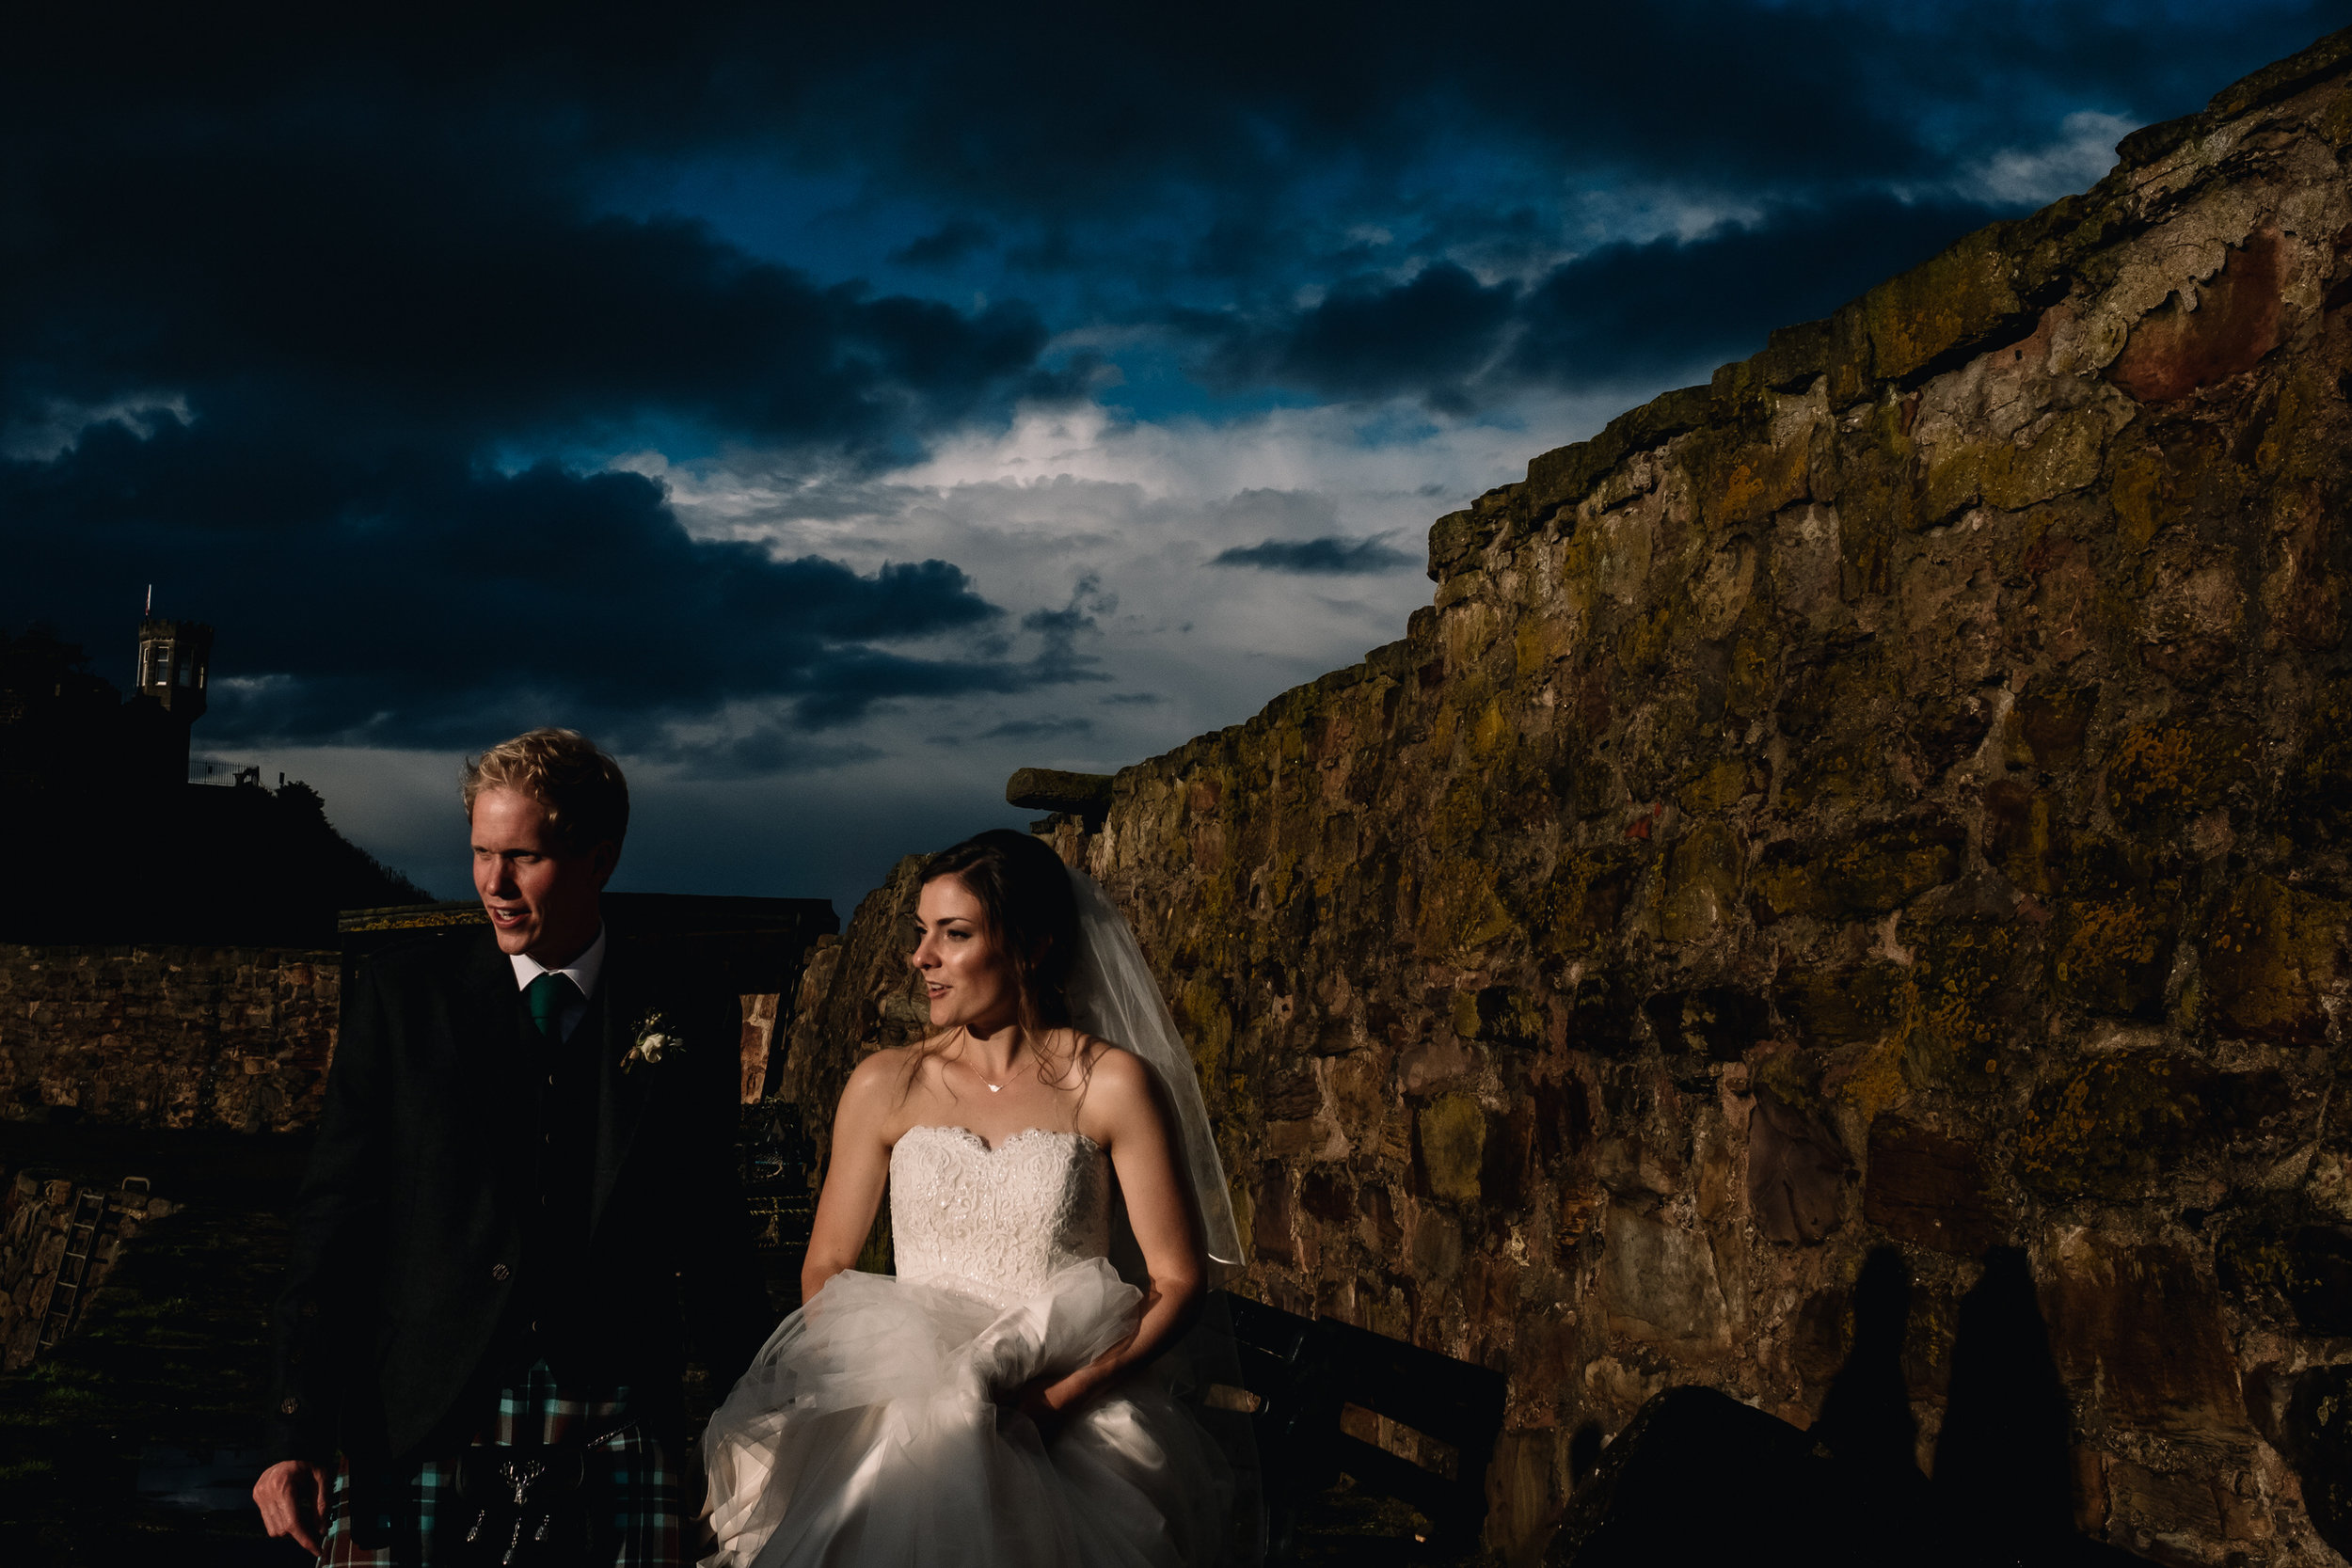 26-The-Cow-Shed-Crail-Wedding-crail-harbour-bride-and-groom-walking.JPG